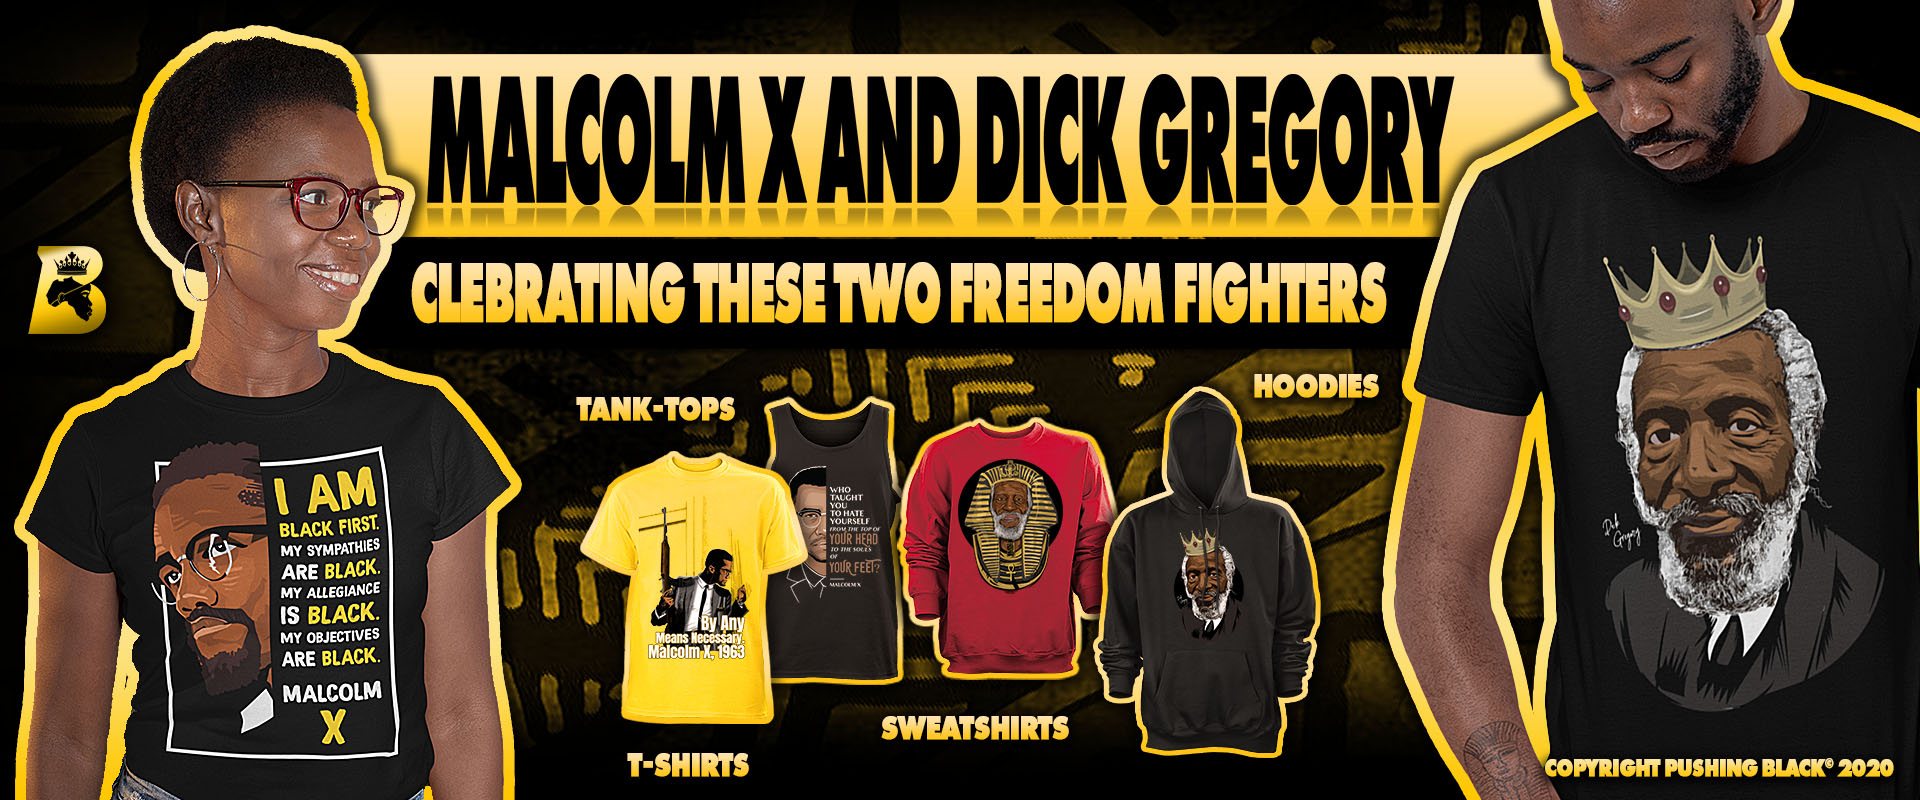 malcolm-x-and-dick-gregoryhomepage.jpg